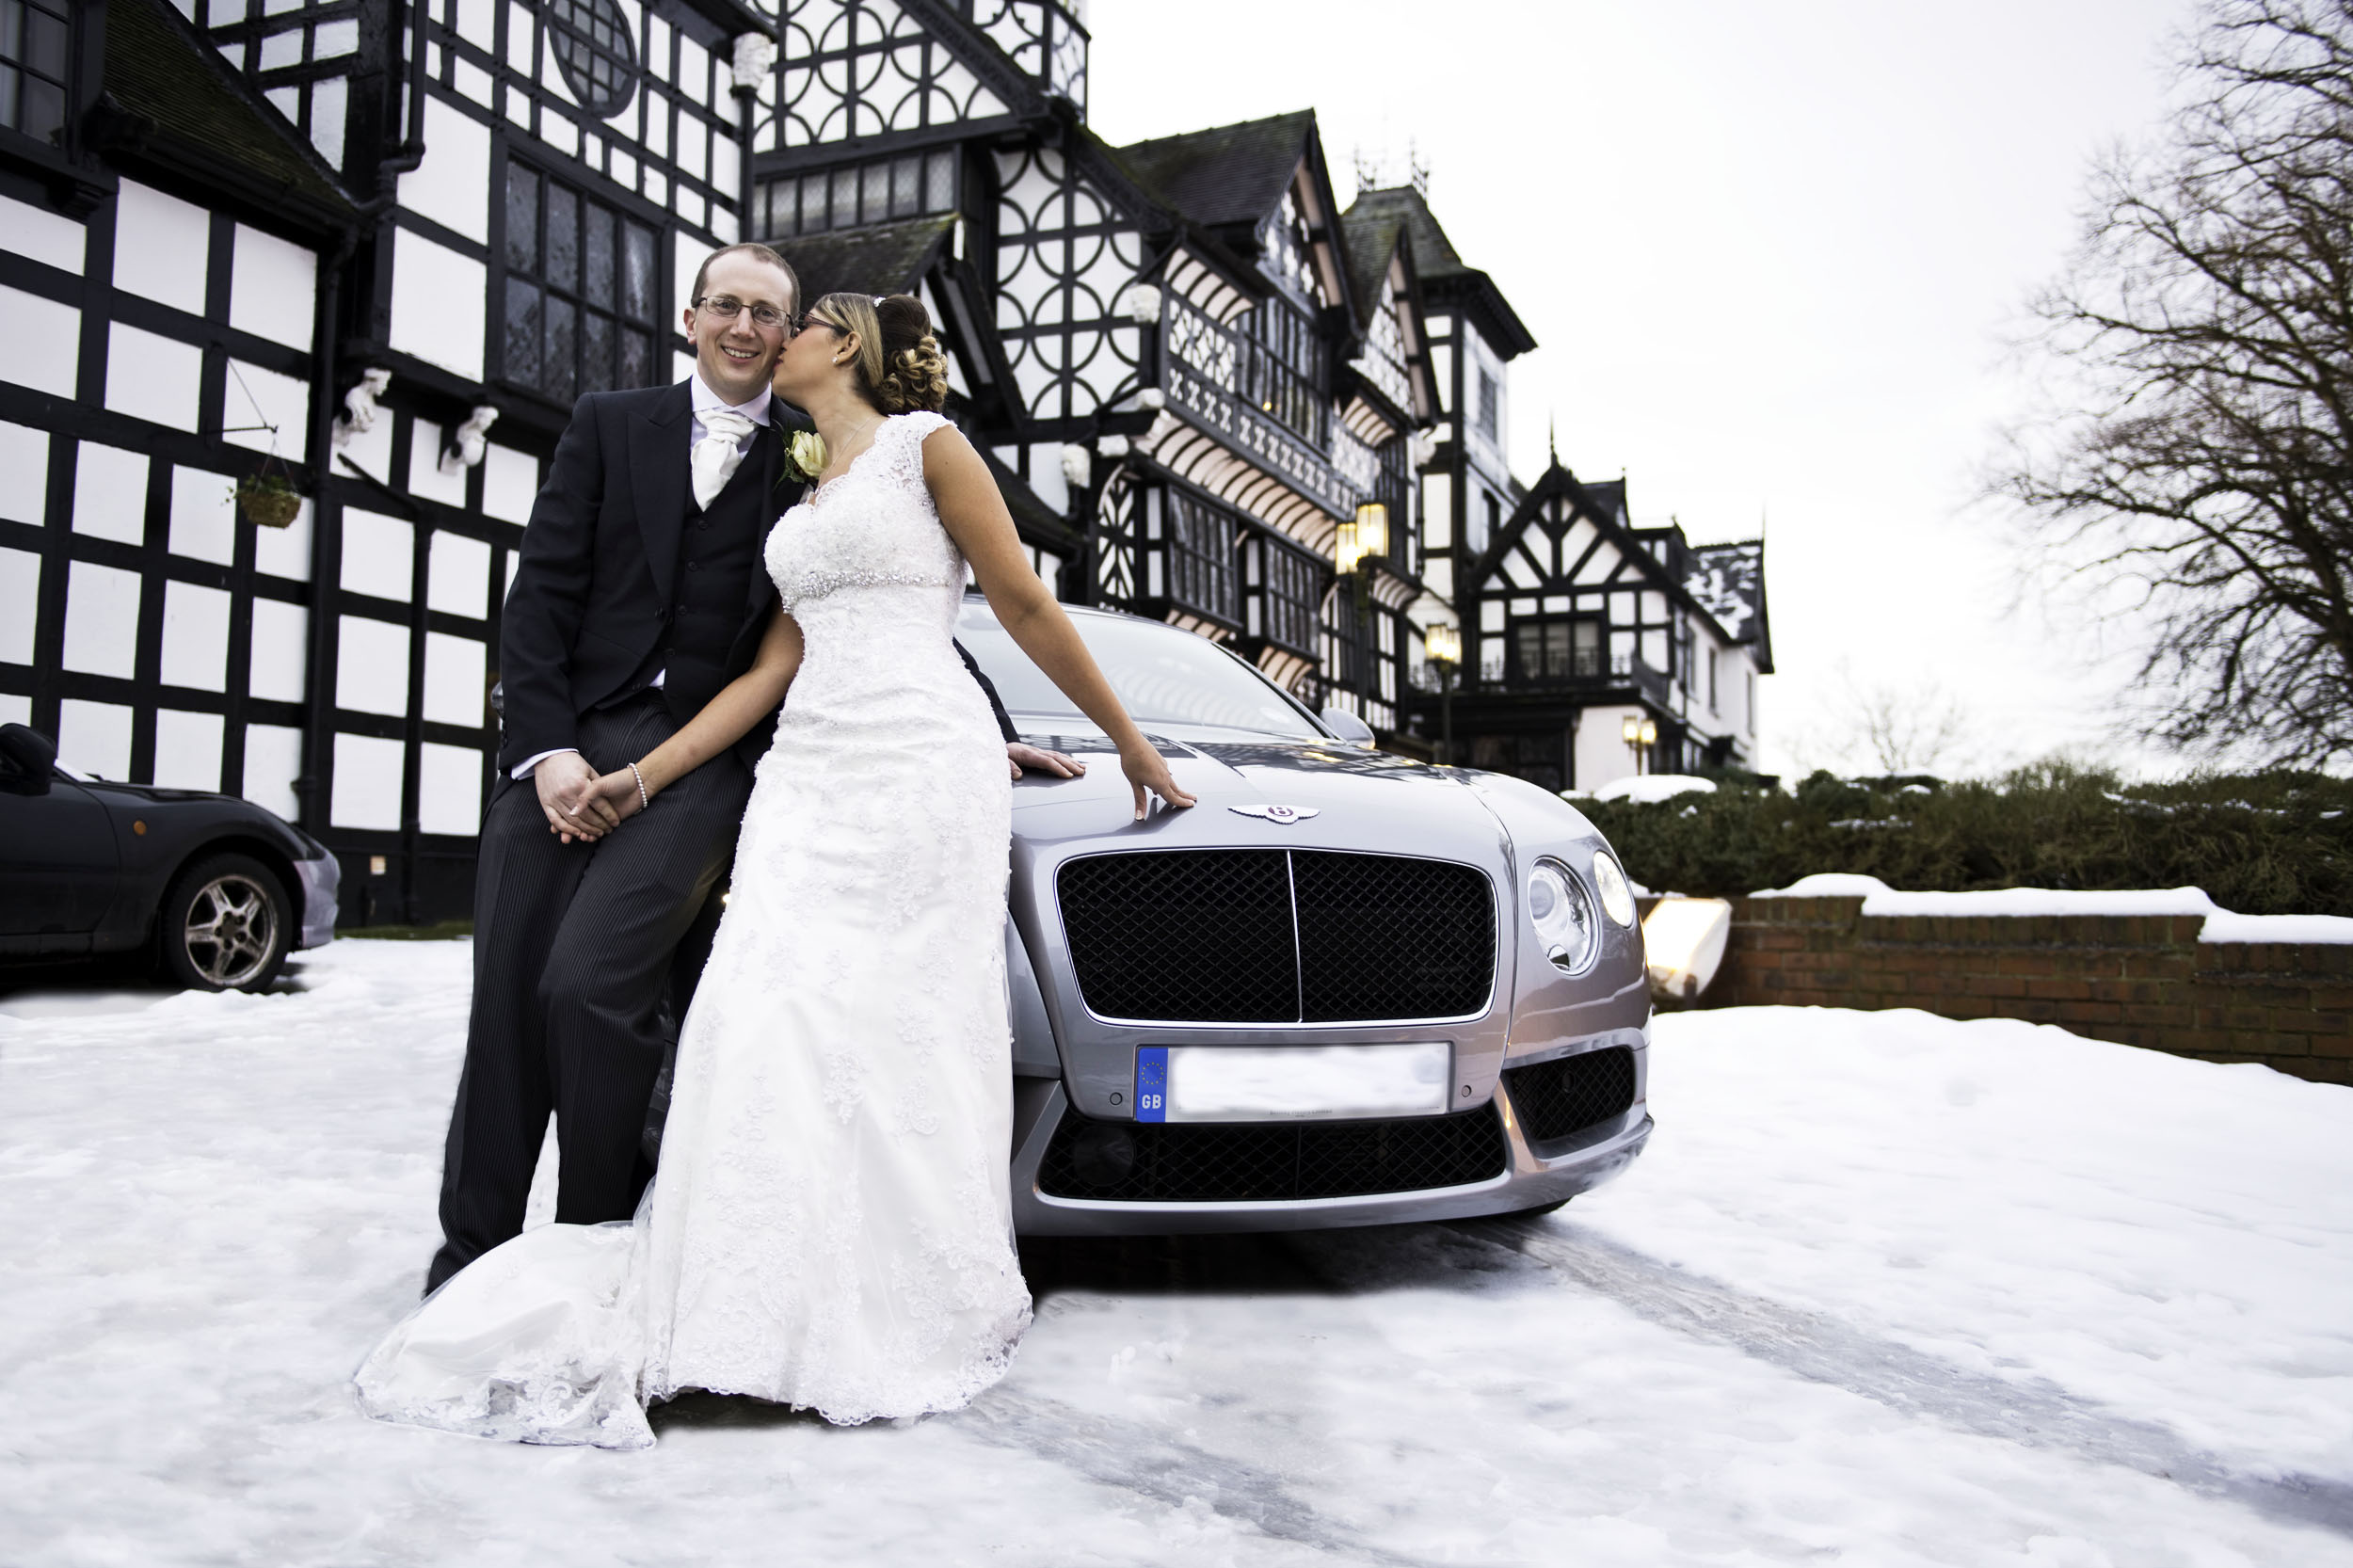 The Wild Boar Inn black and white building with snow all around - stunning background for this lovely couple